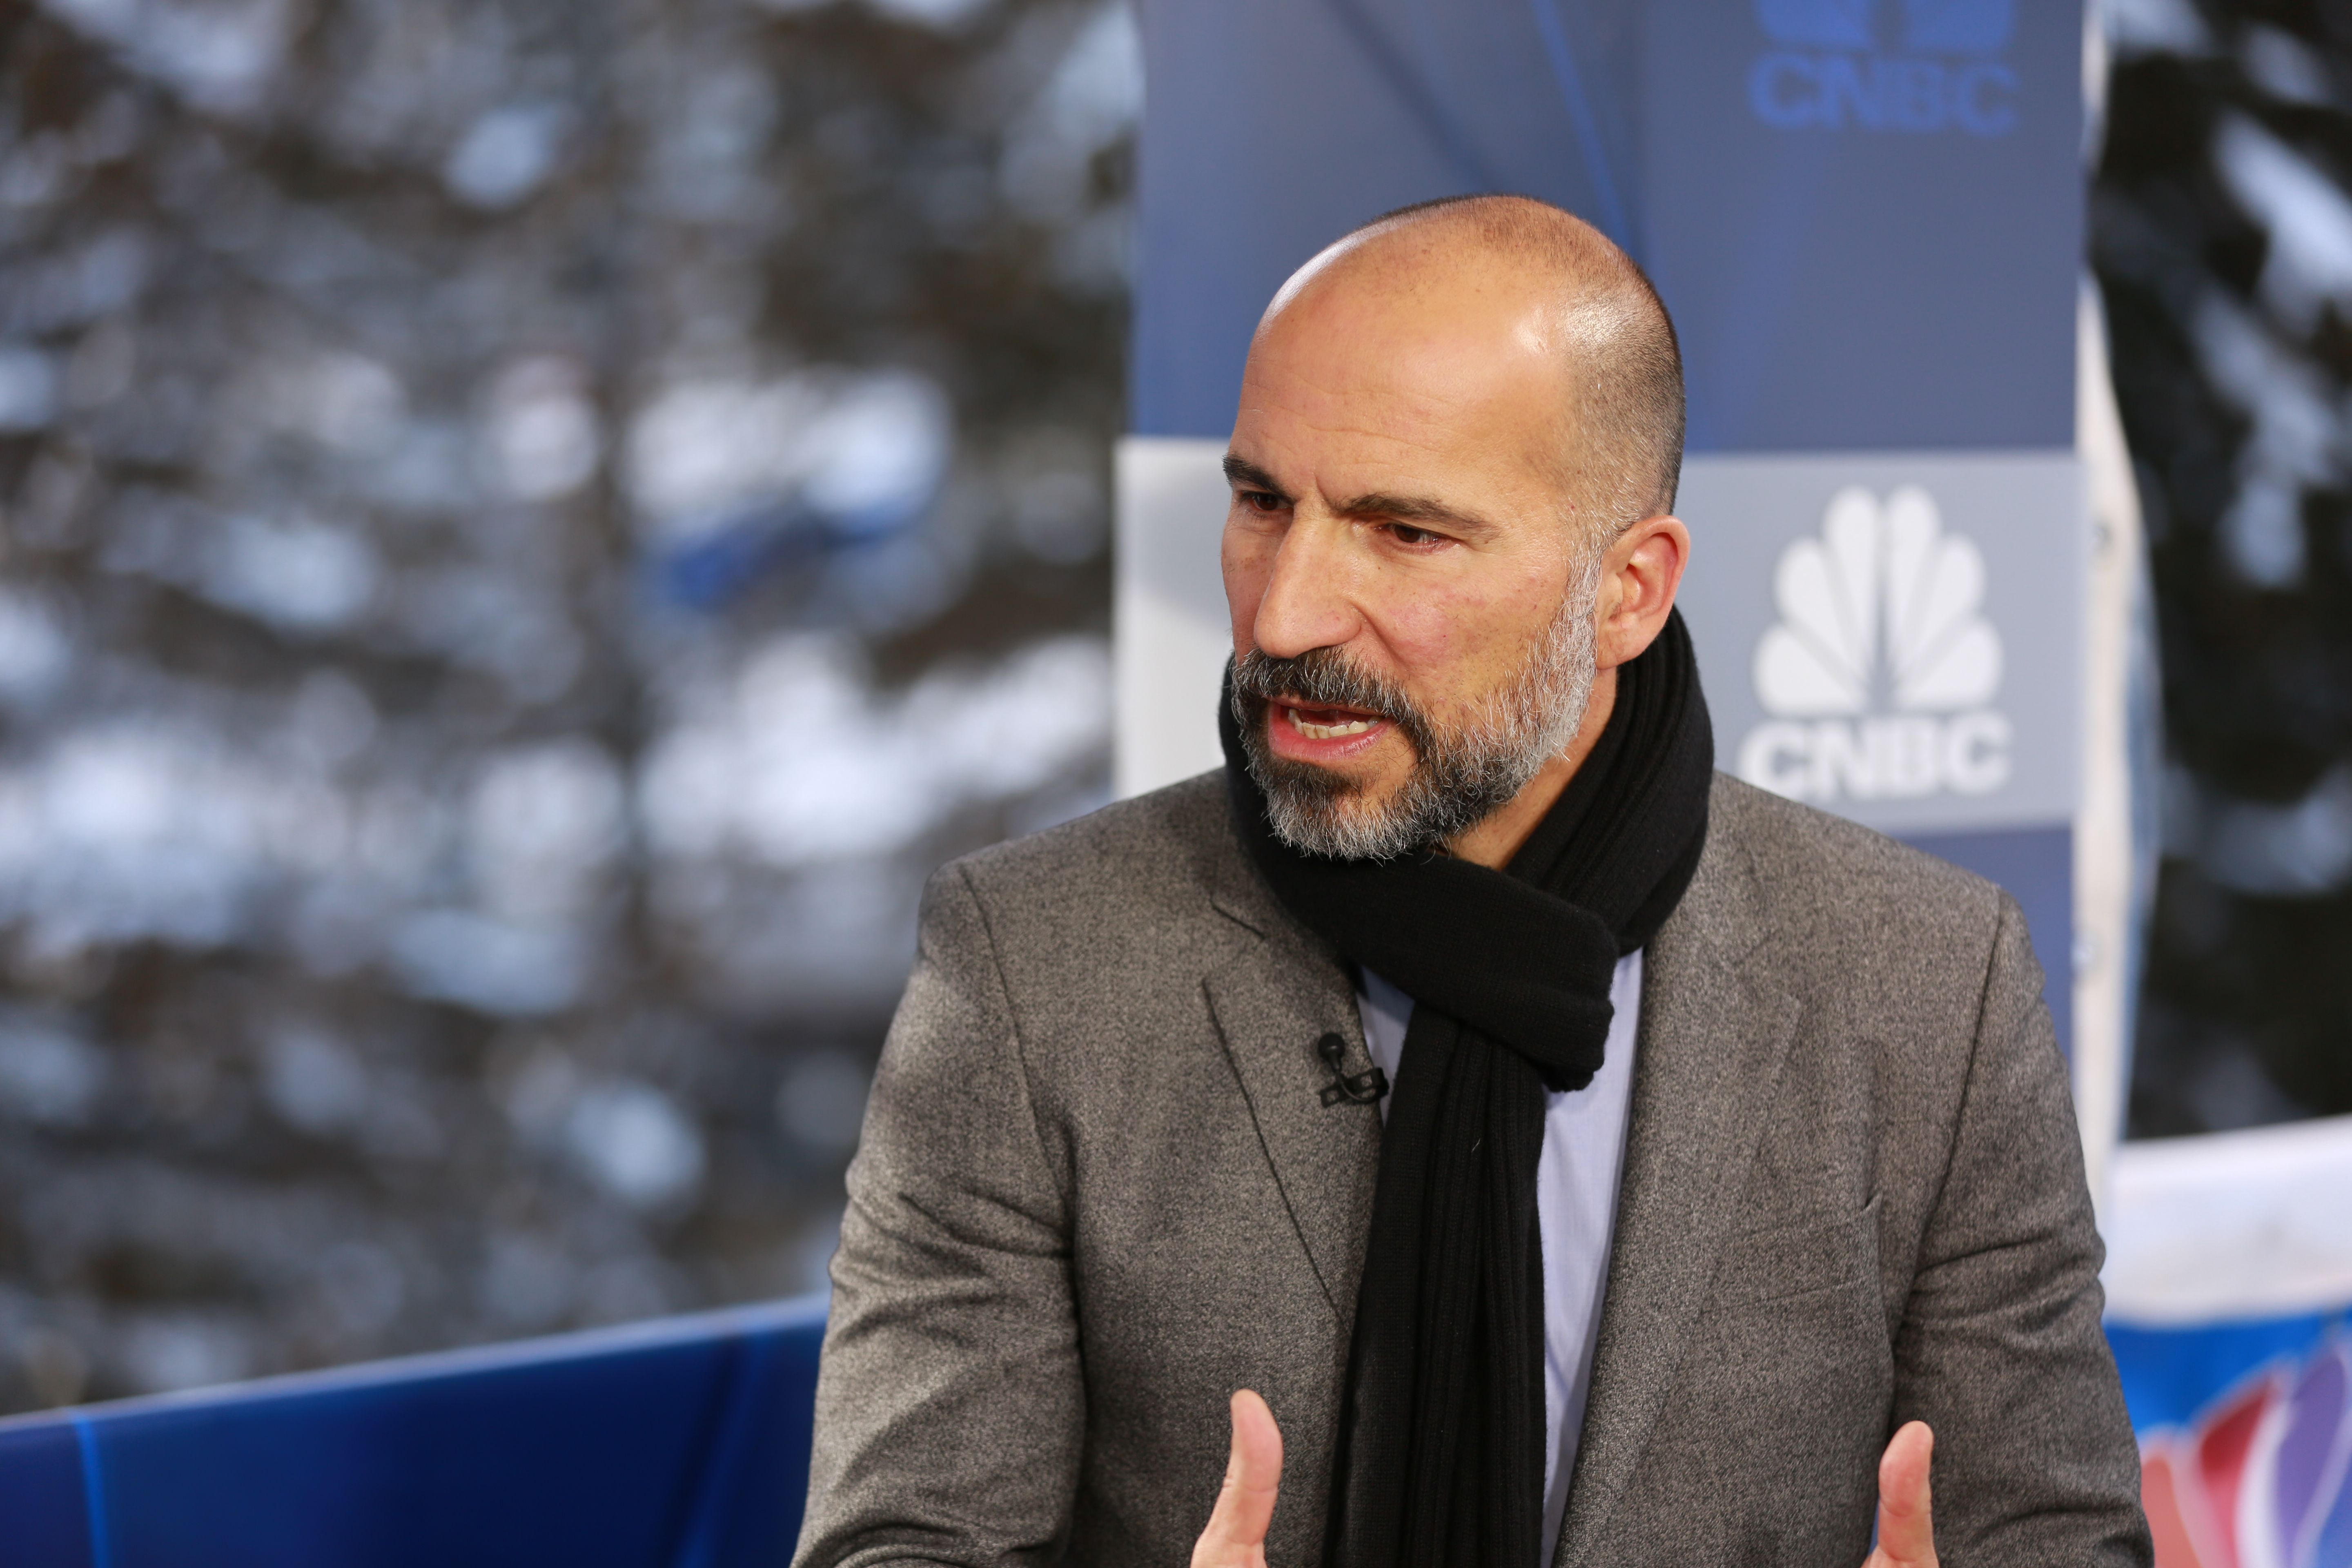 Uber looks almost nothing like Amazon despite its investor pitch